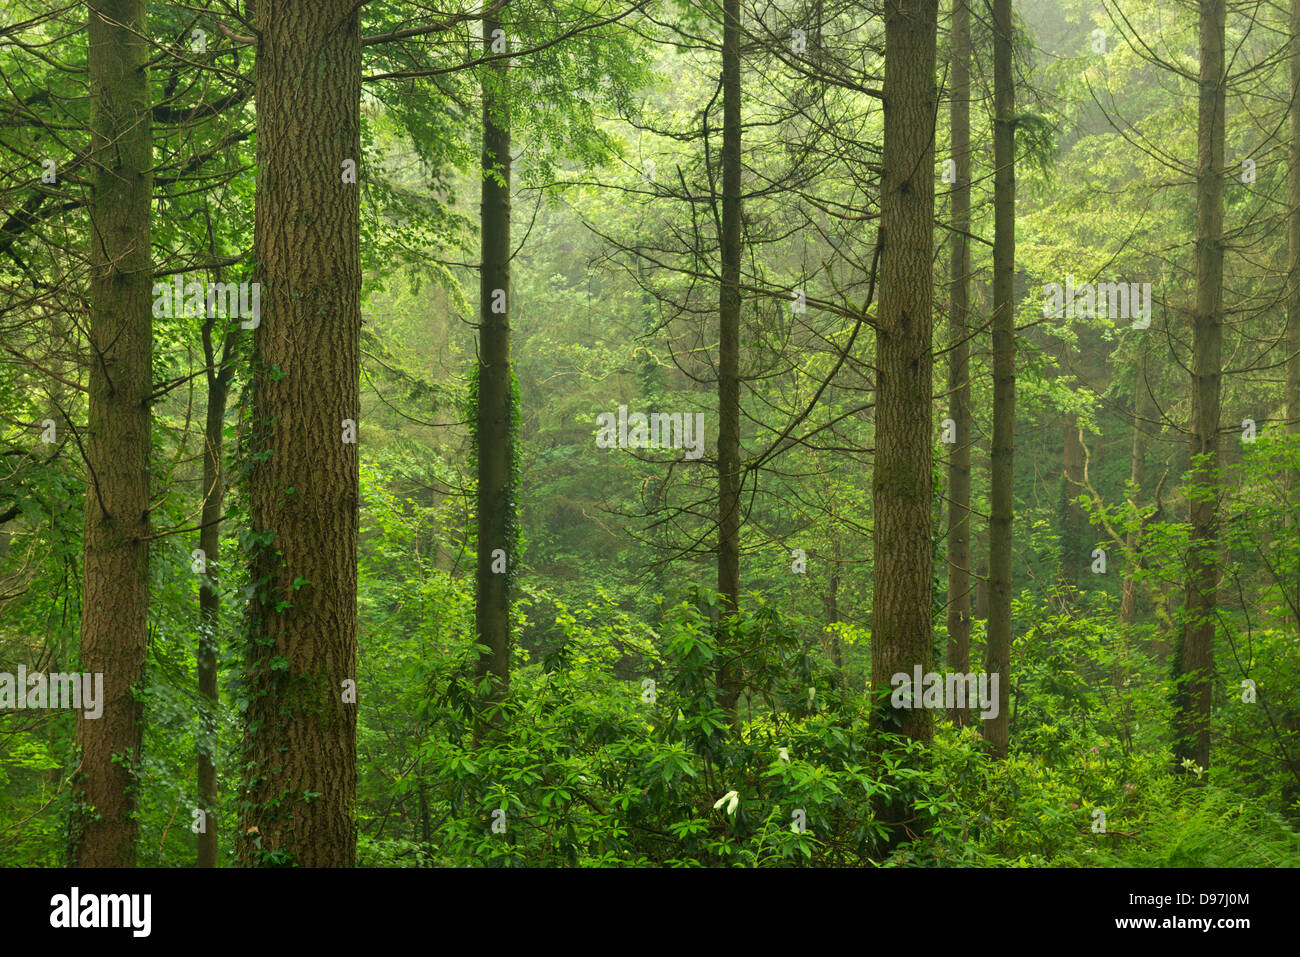 Vibrant pine woodland in summertime, Morchard Wood, Devon, England. Summer (June) 2012. - Stock Image